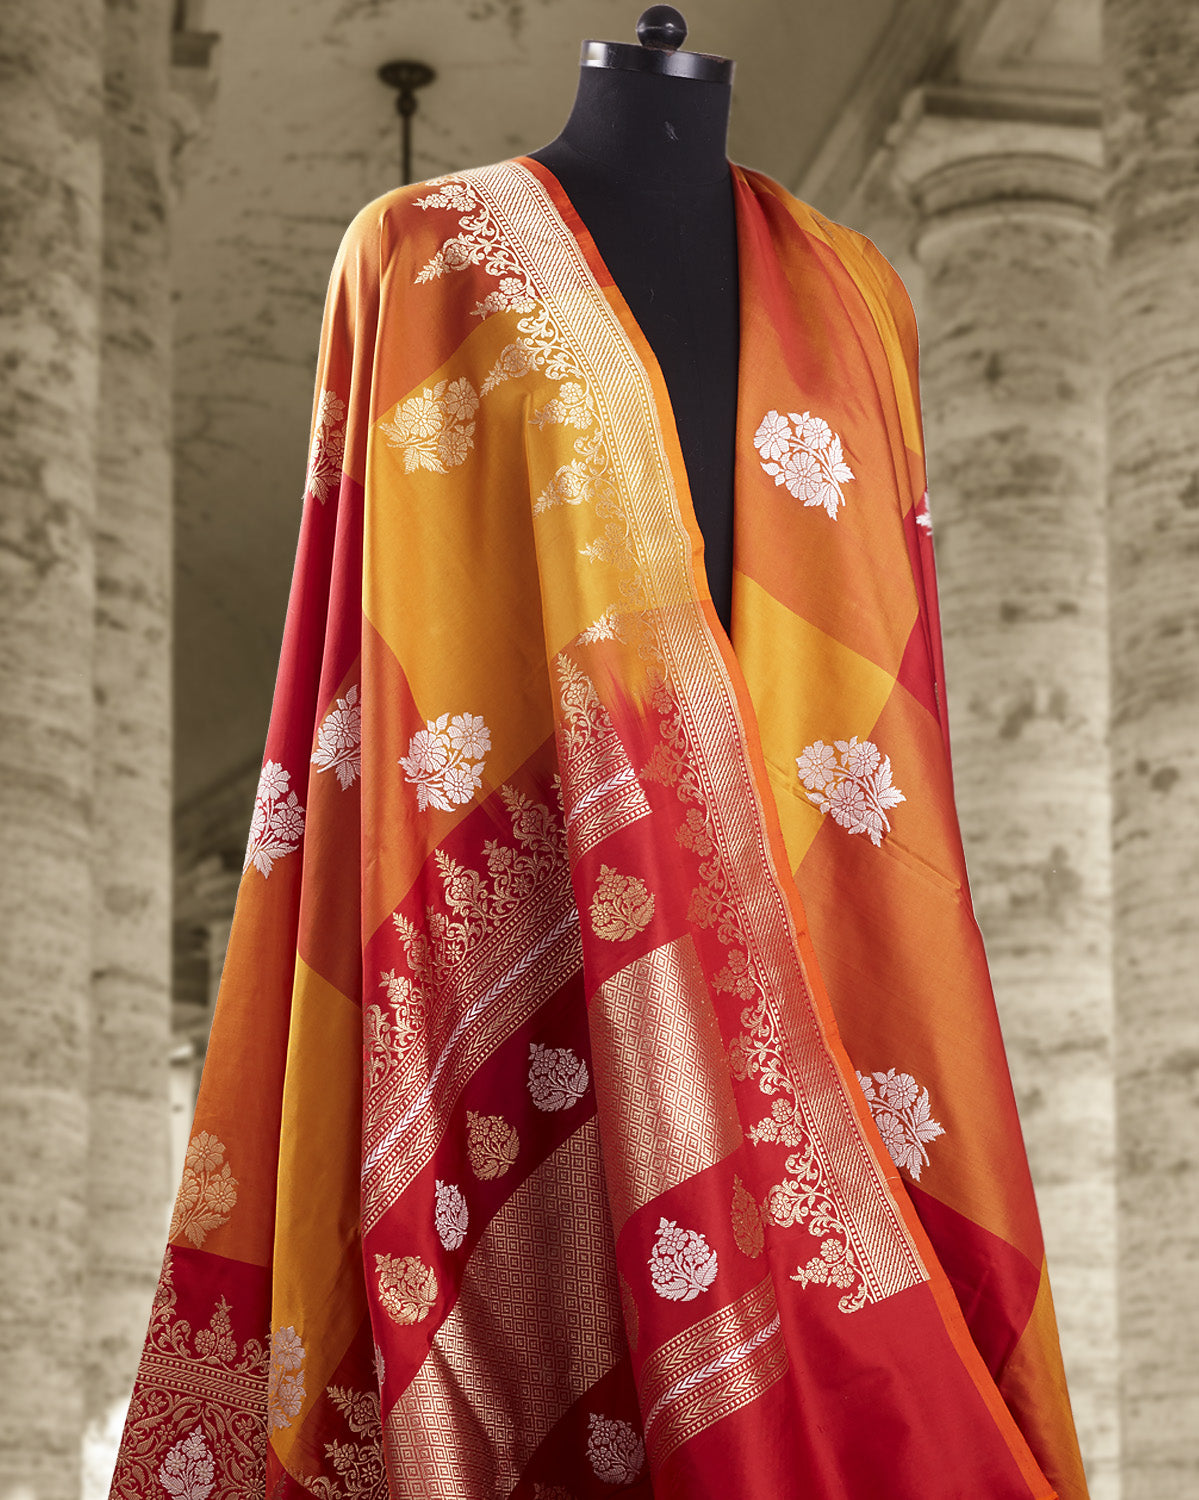 Smeared Vermillion Checks Katan Silk Saree